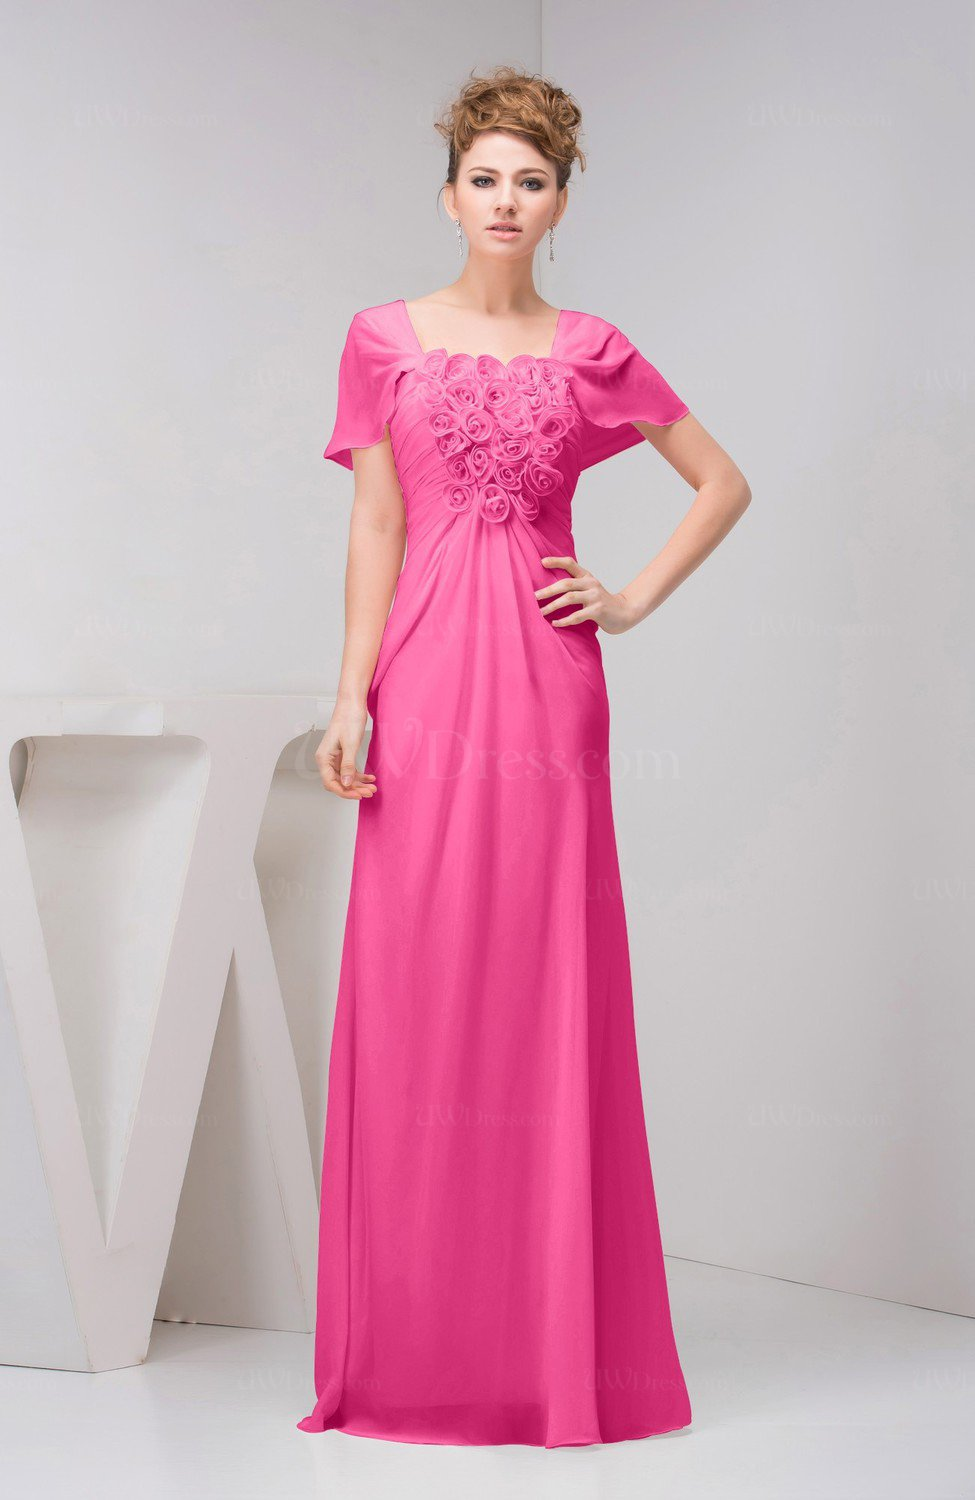 Pink Informal Wedding Dresses : Rose pink with sleeves bridesmaid dress chiffon fall